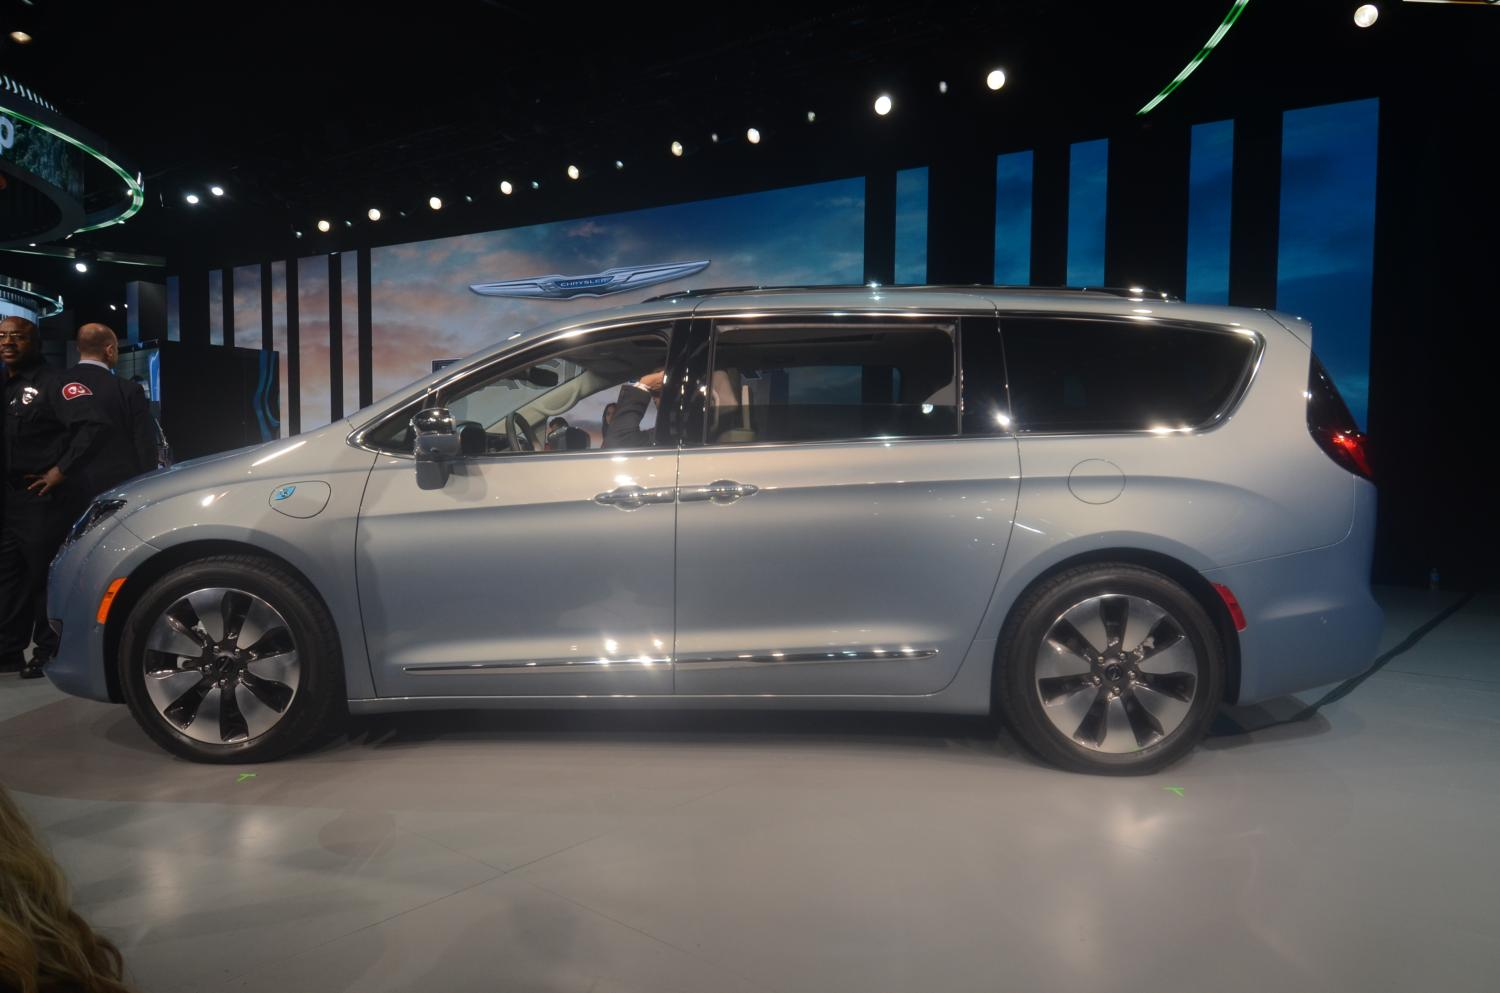 2017 Chrysler Pacifica Hybrid Hits 75 Mph In Ev Mode Has